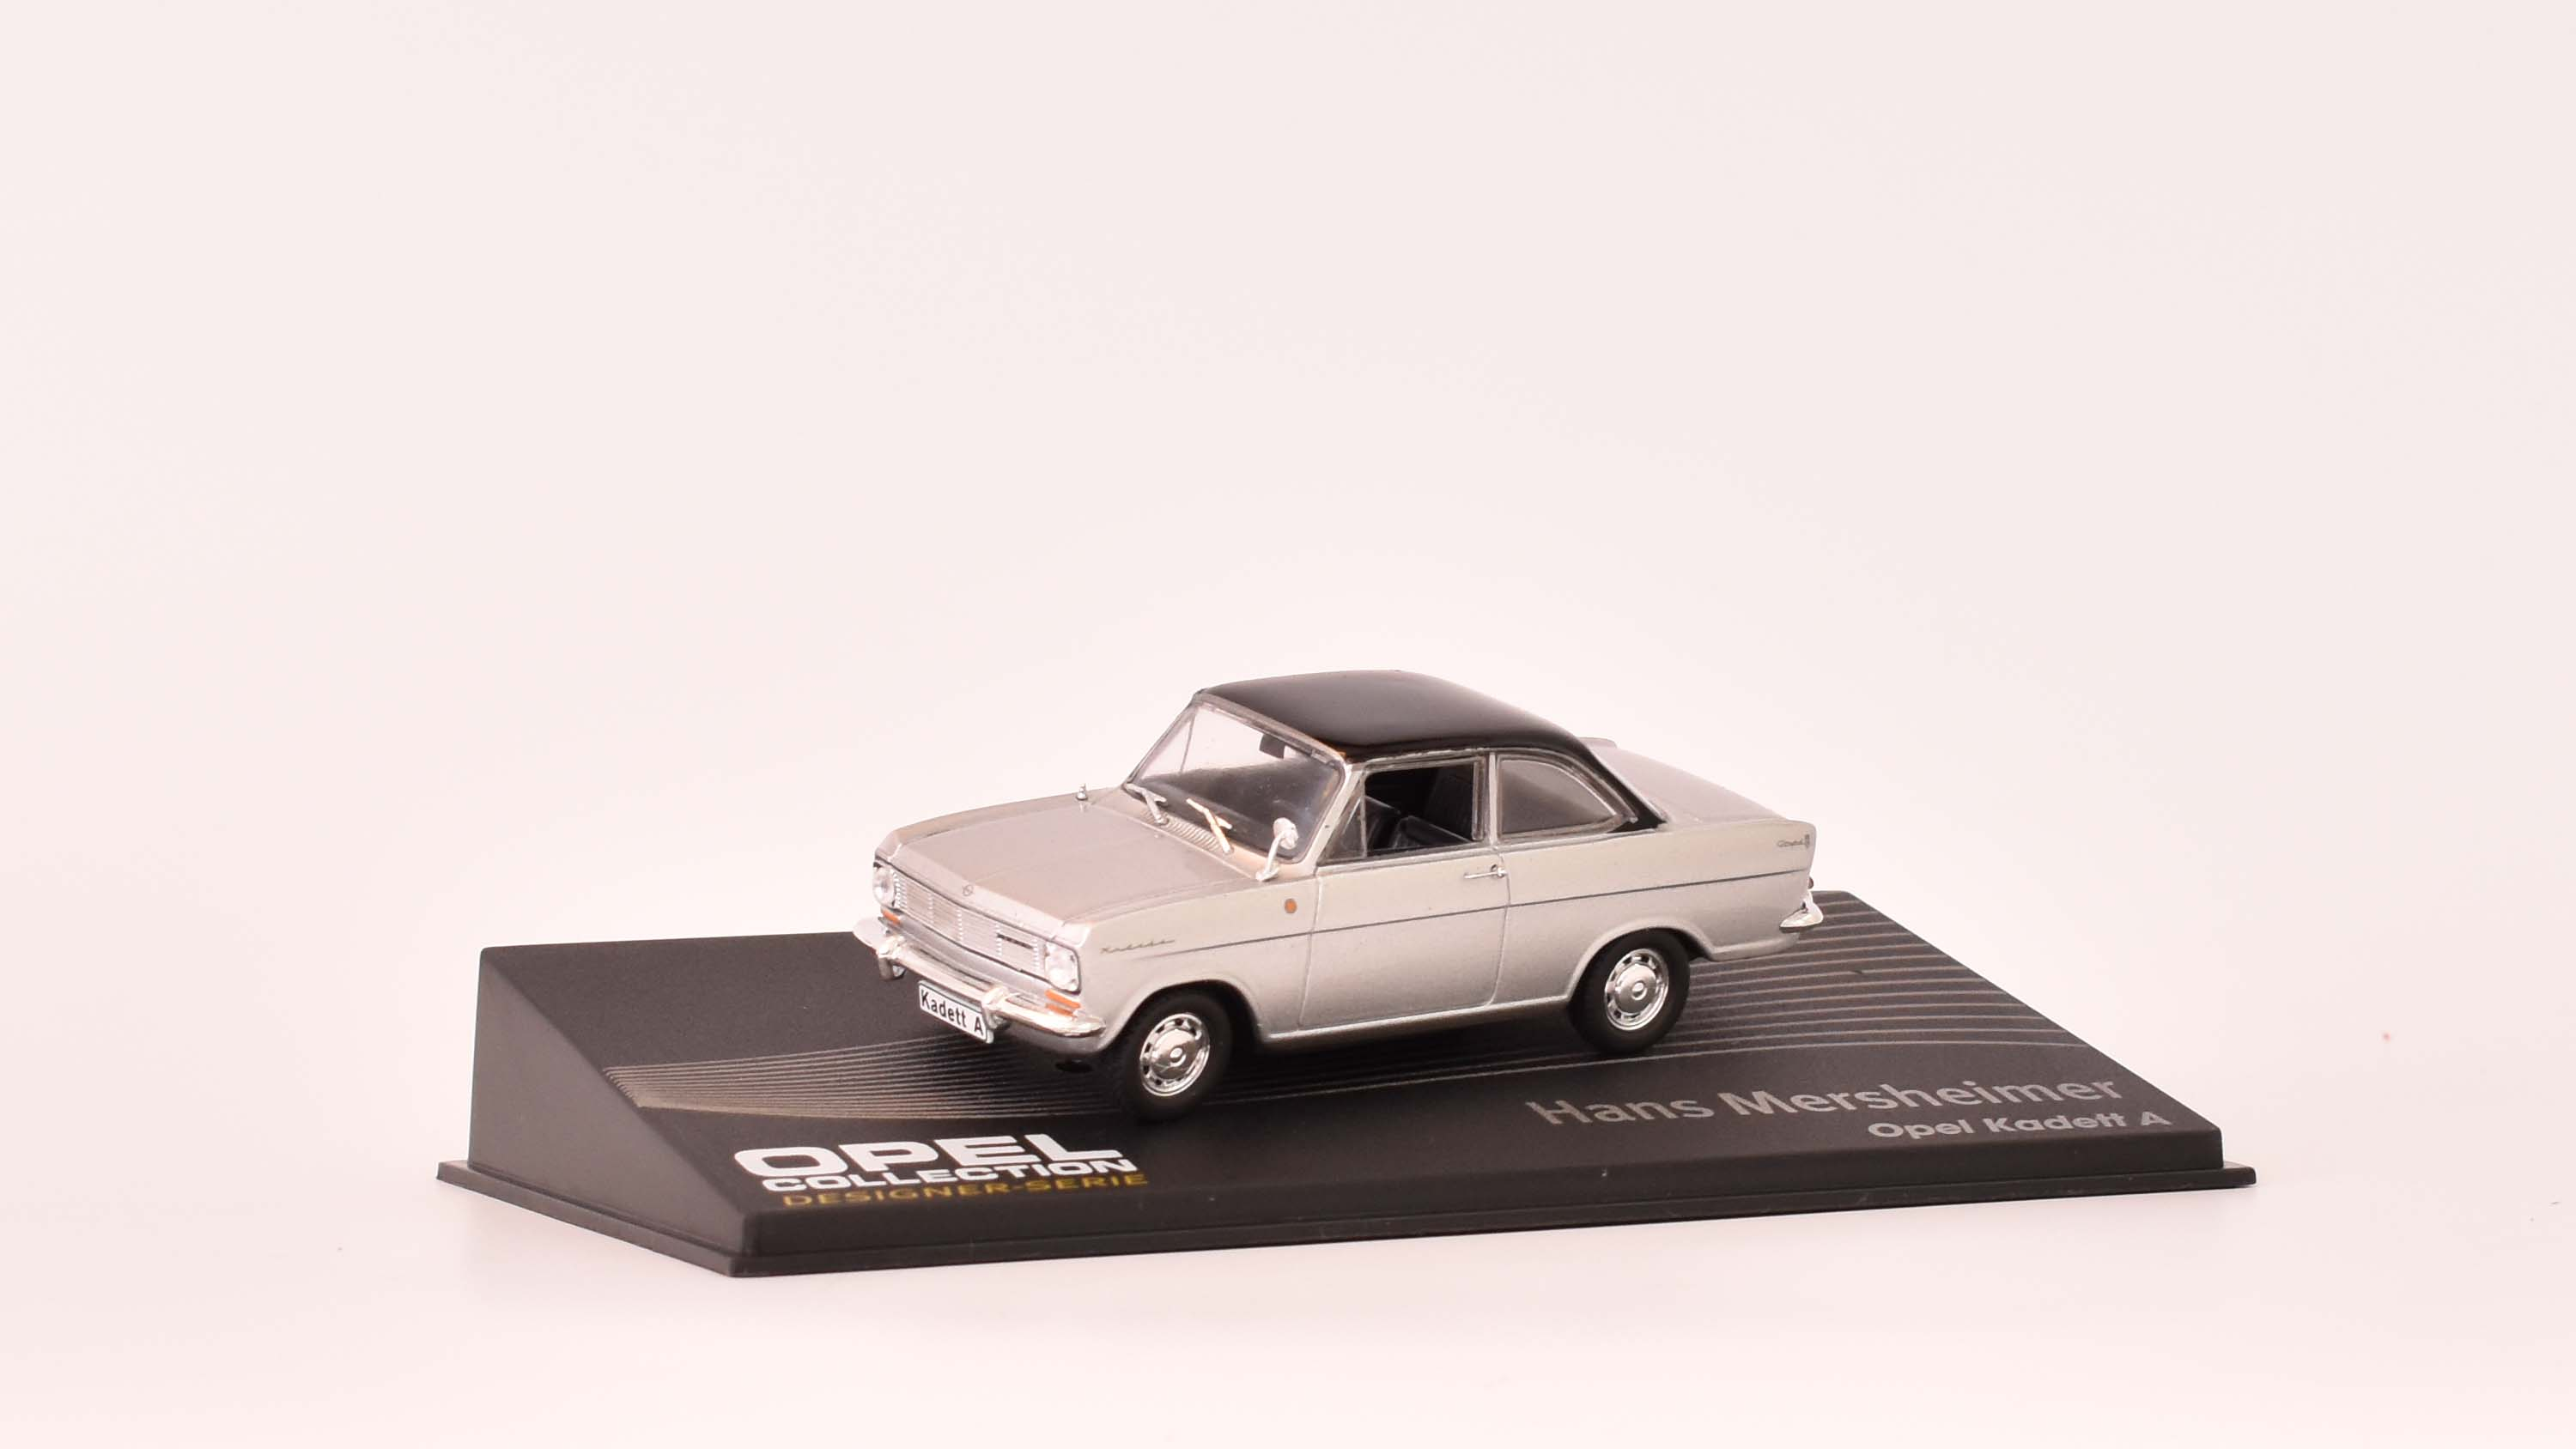 Opel Kadett A coupe 1:43 Opel collection časopis AutoModels s modelem